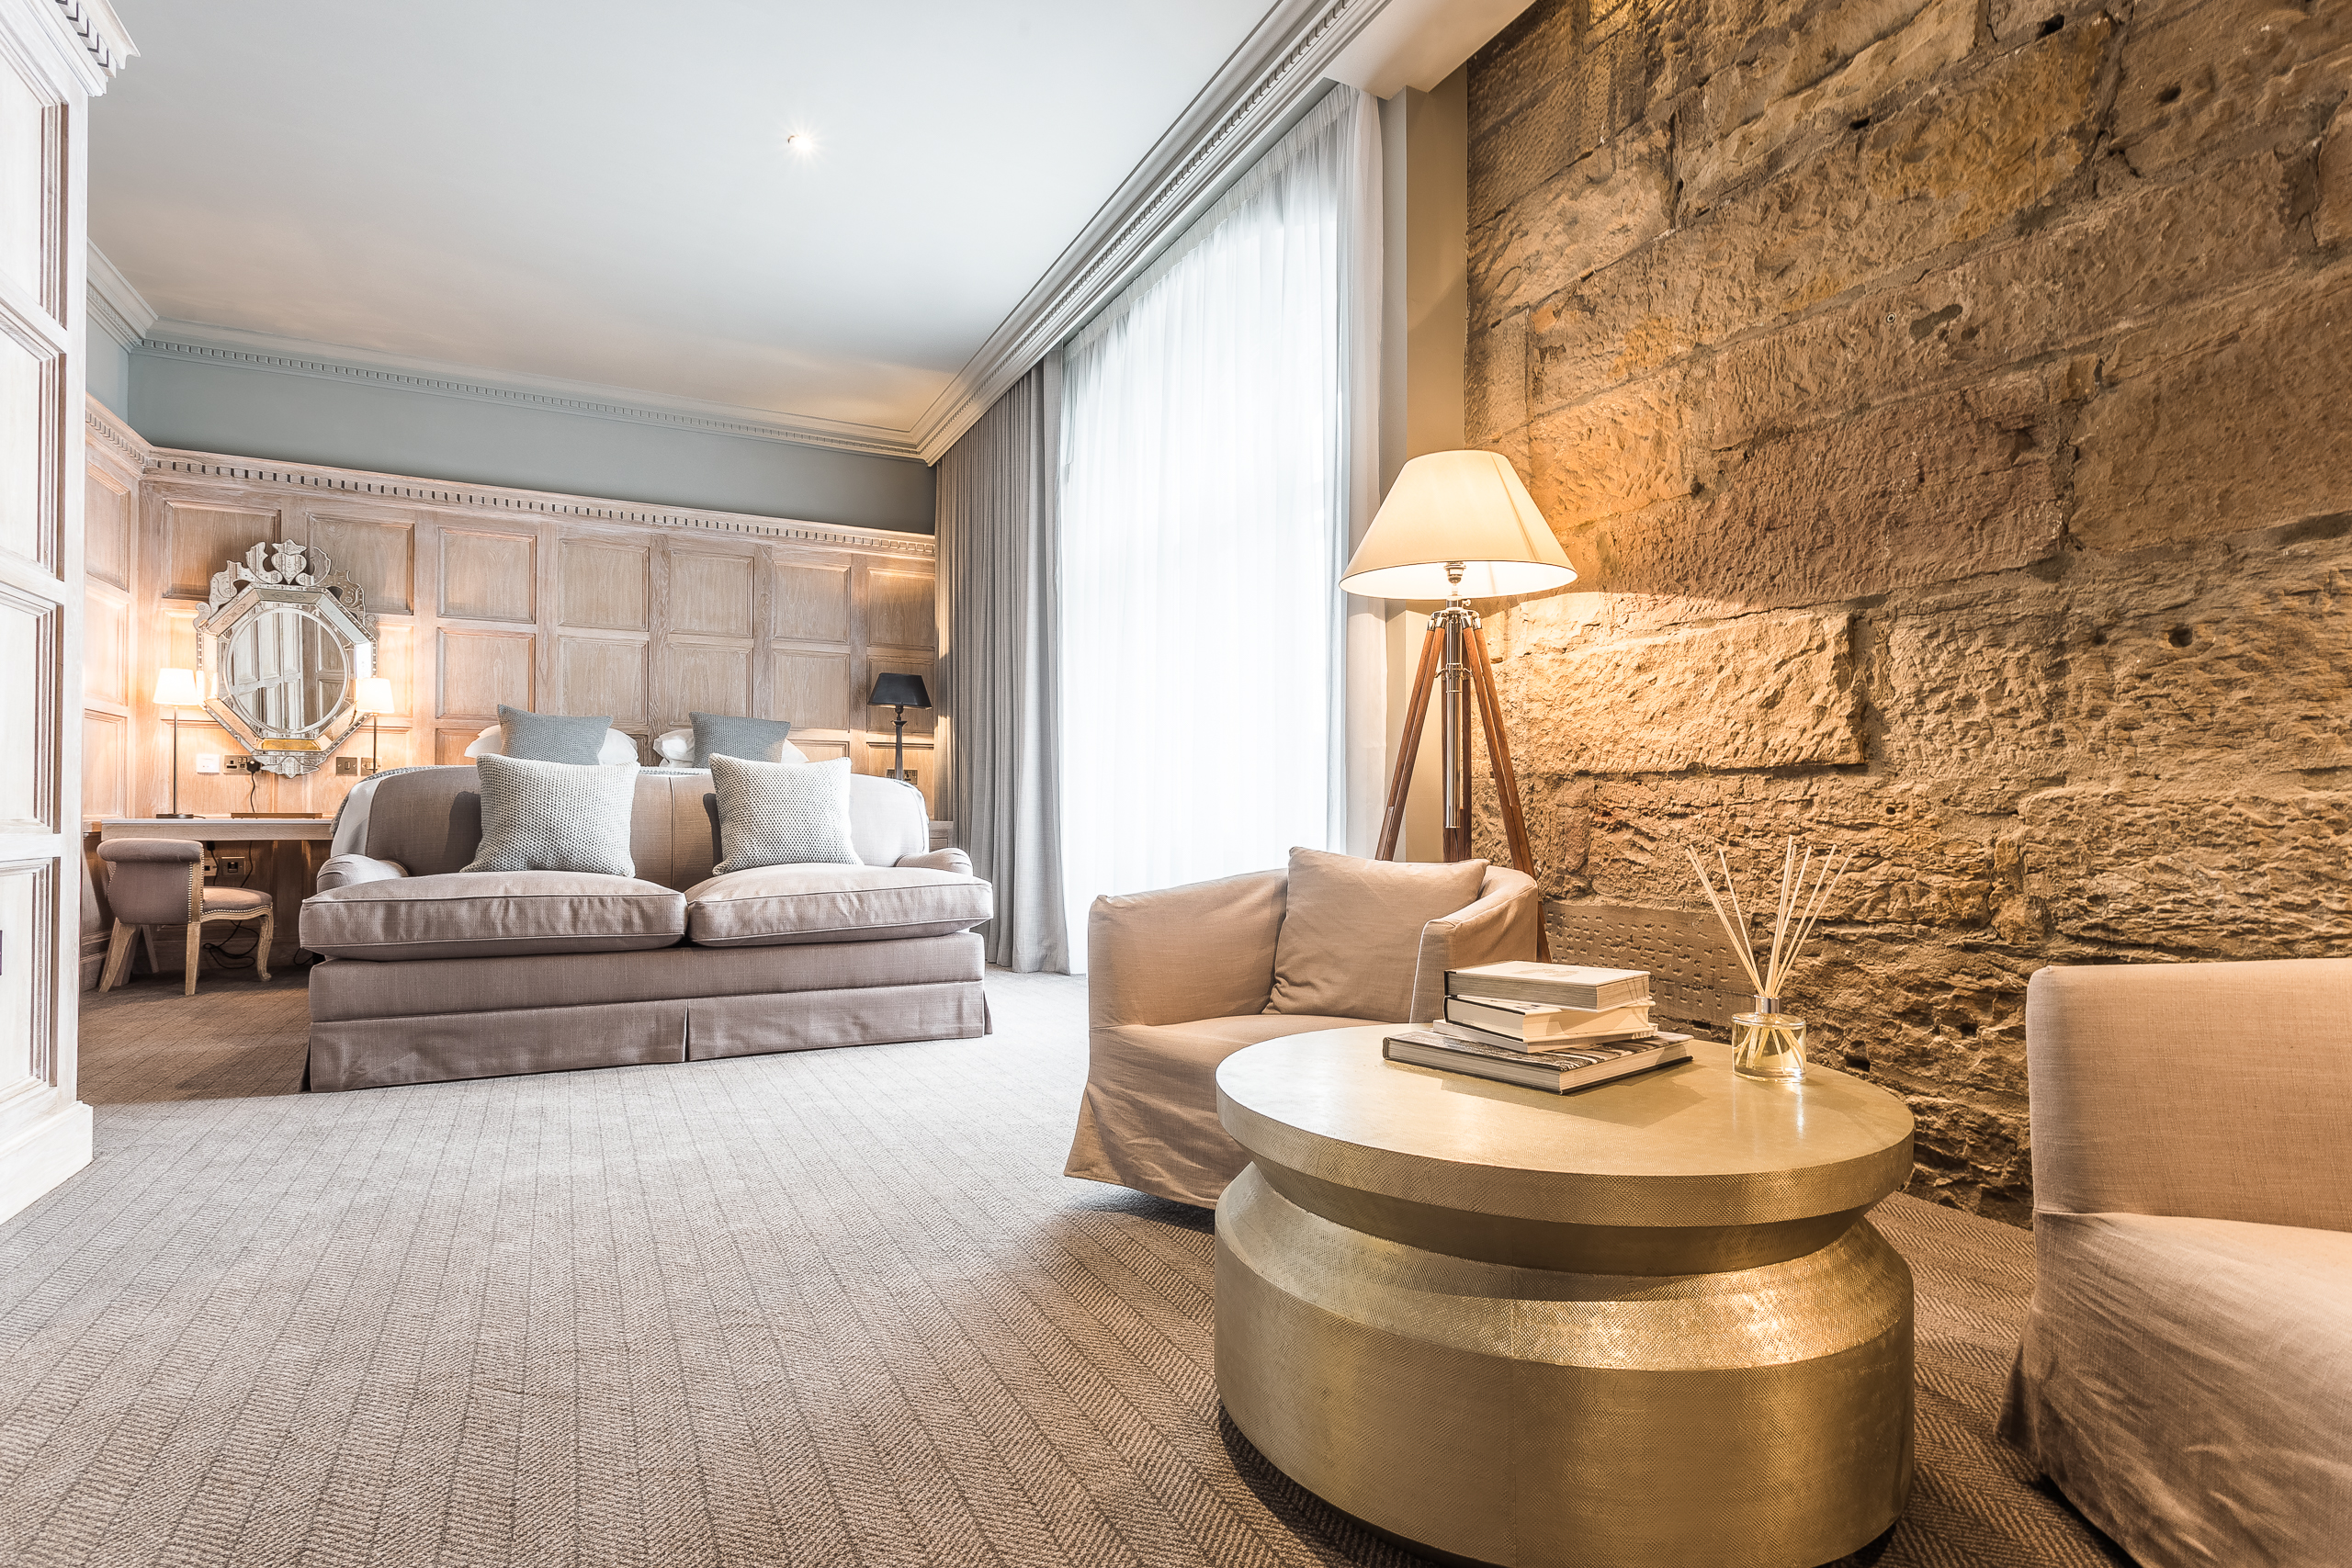 The Scotsman Hotel is a jewel just off the Royal Mile in